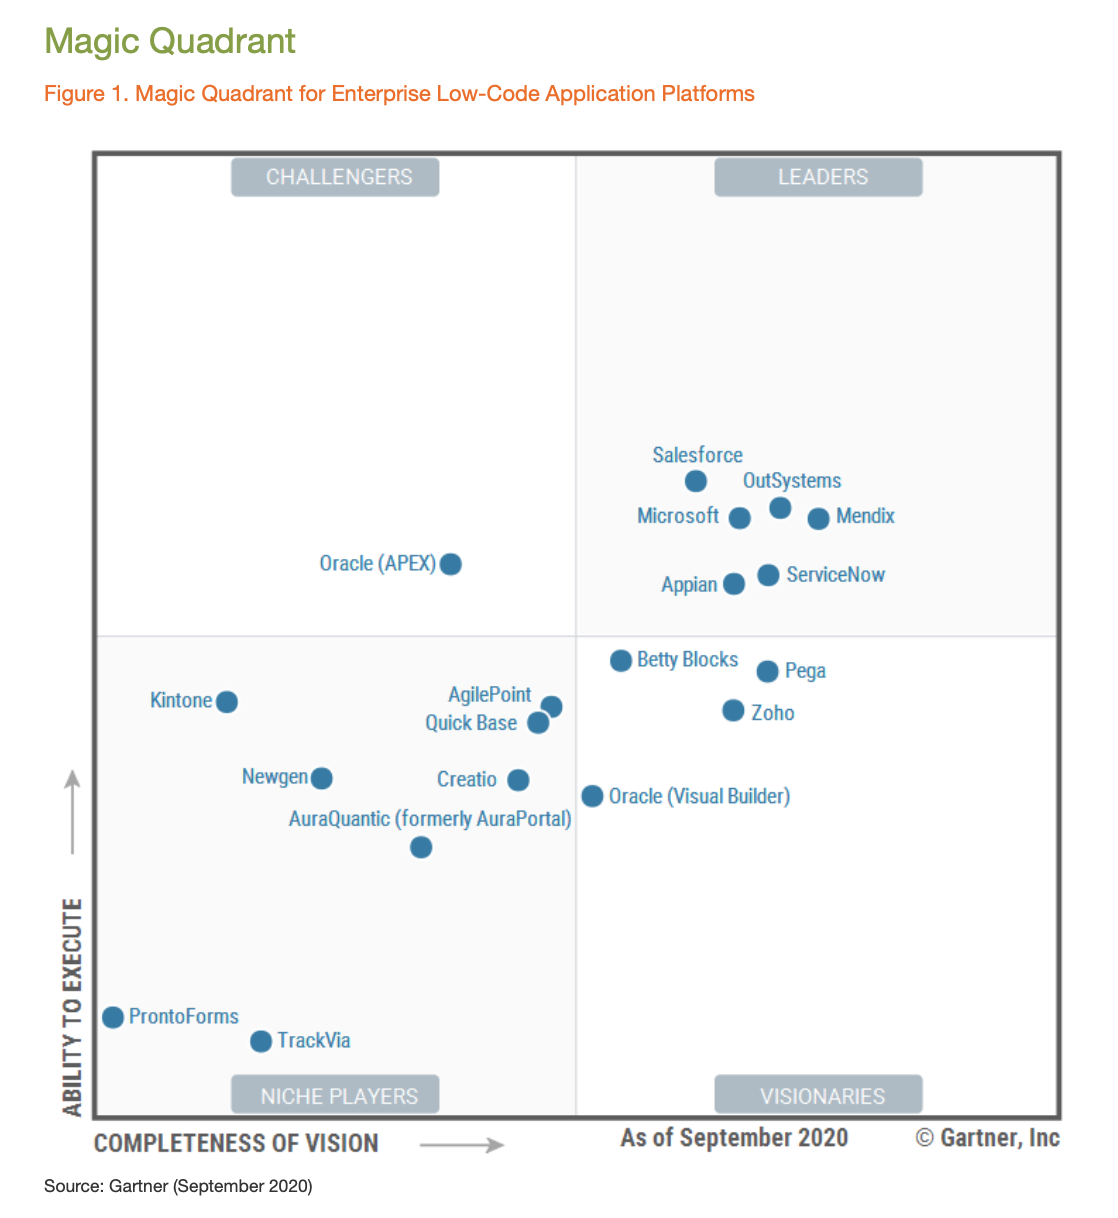 Gartner Magic Quadrant 2020 Kintone Full Report Download